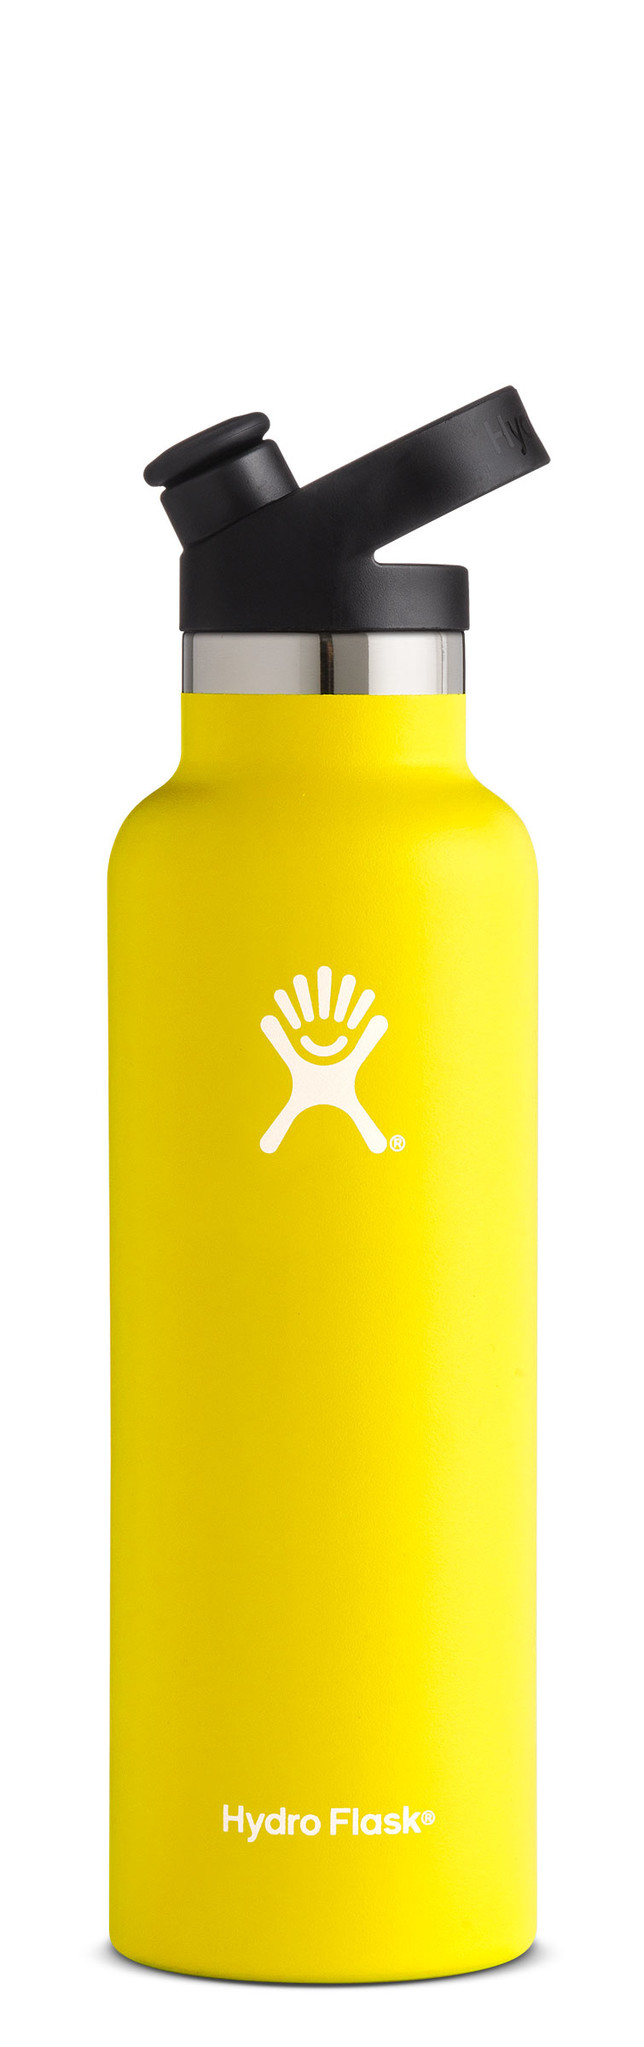 Hydro Flask 21oz Standard Mouth with Sport Cap-7